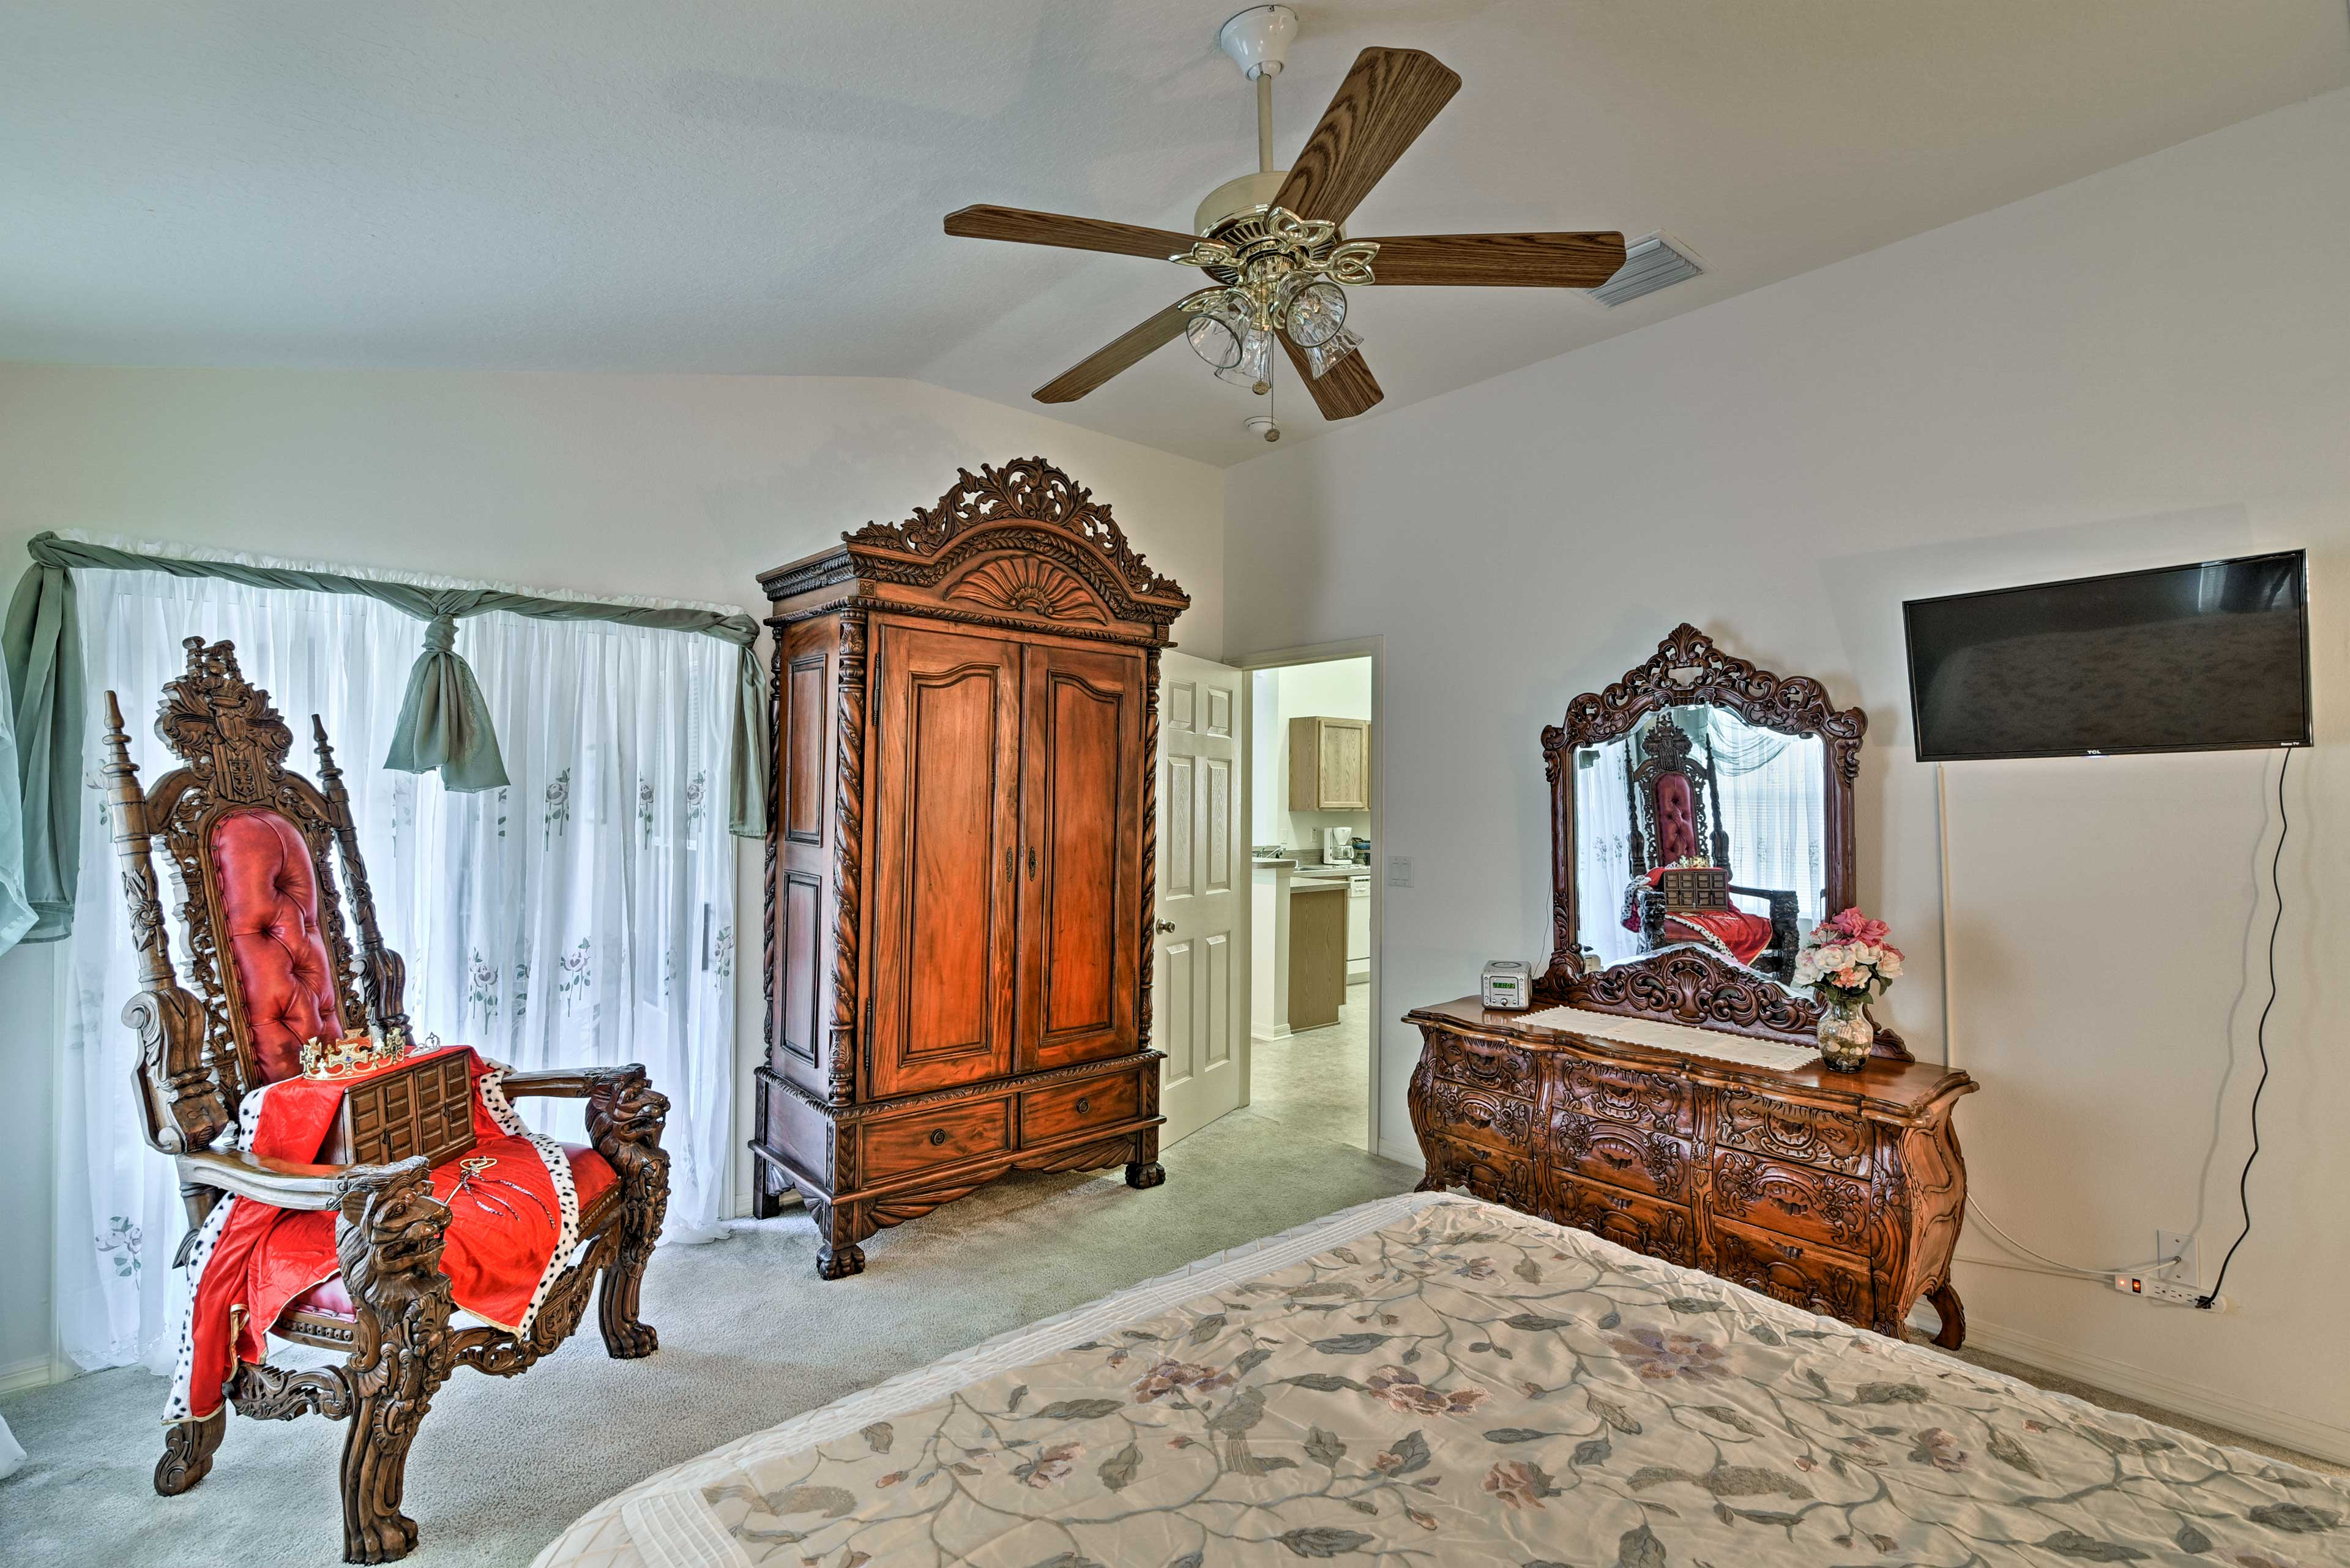 """The Royal Suite features a large, red """"Throne"""" chair for family photos."""